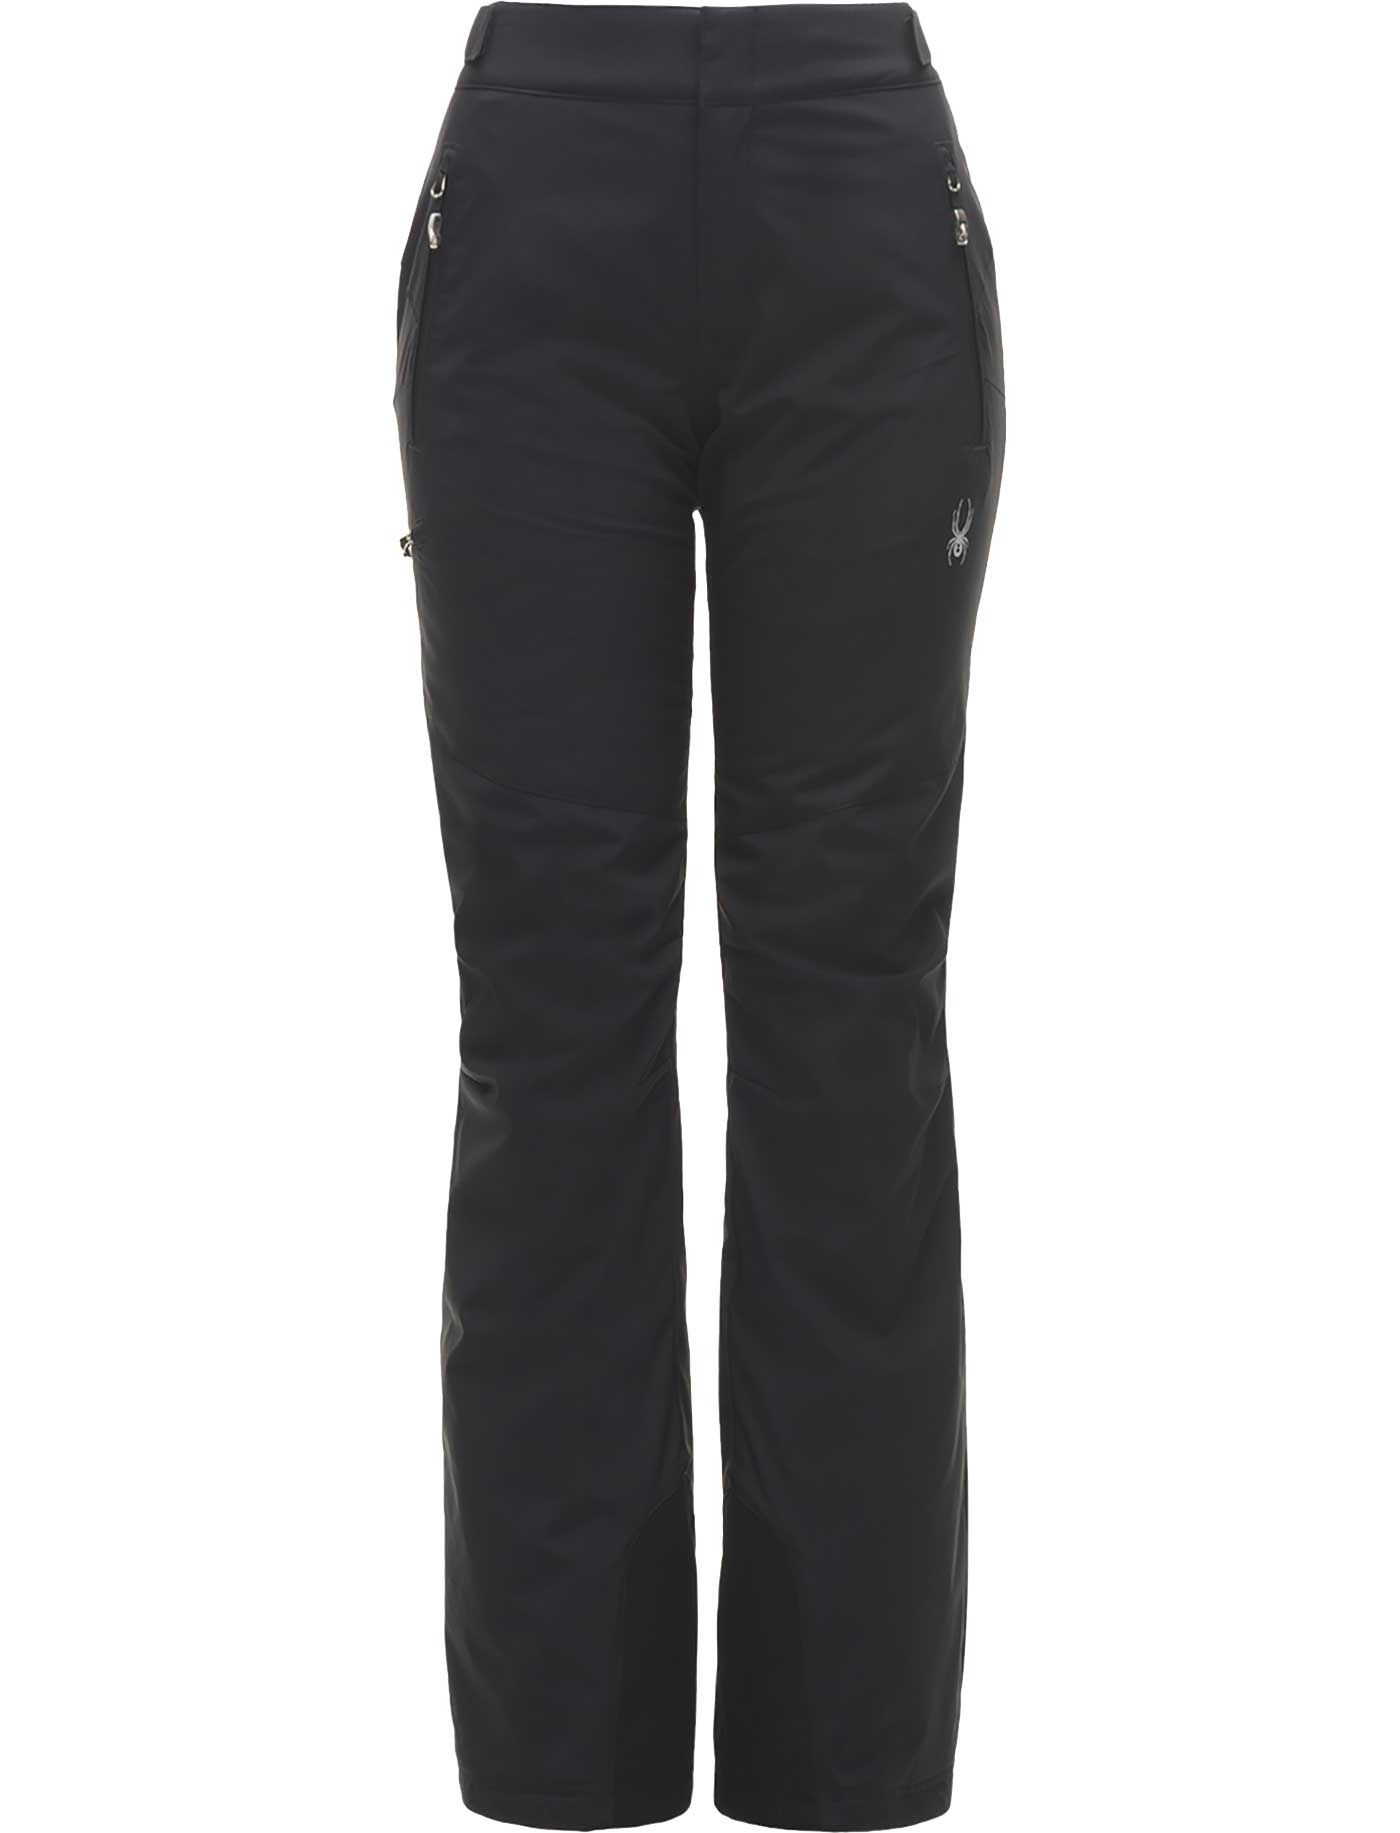 Spyder Women's Winner Tailored Pants